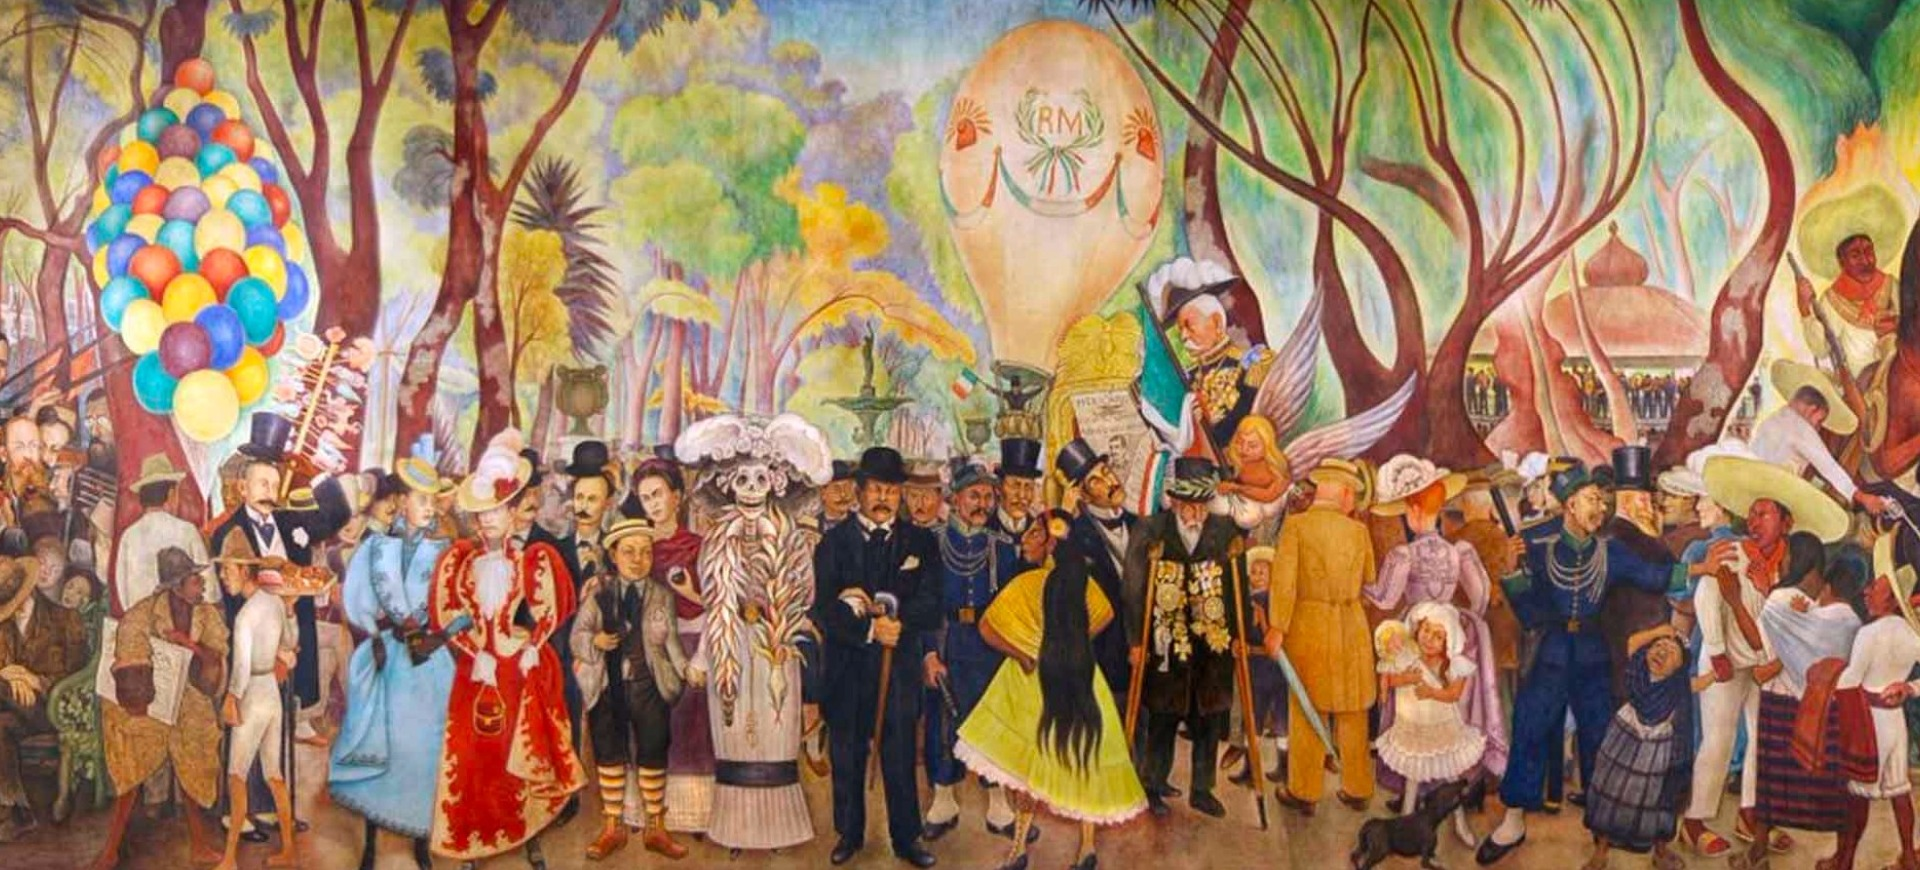 Museo mural diego rivera inba instituto nacional de for Diego rivera s most famous mural